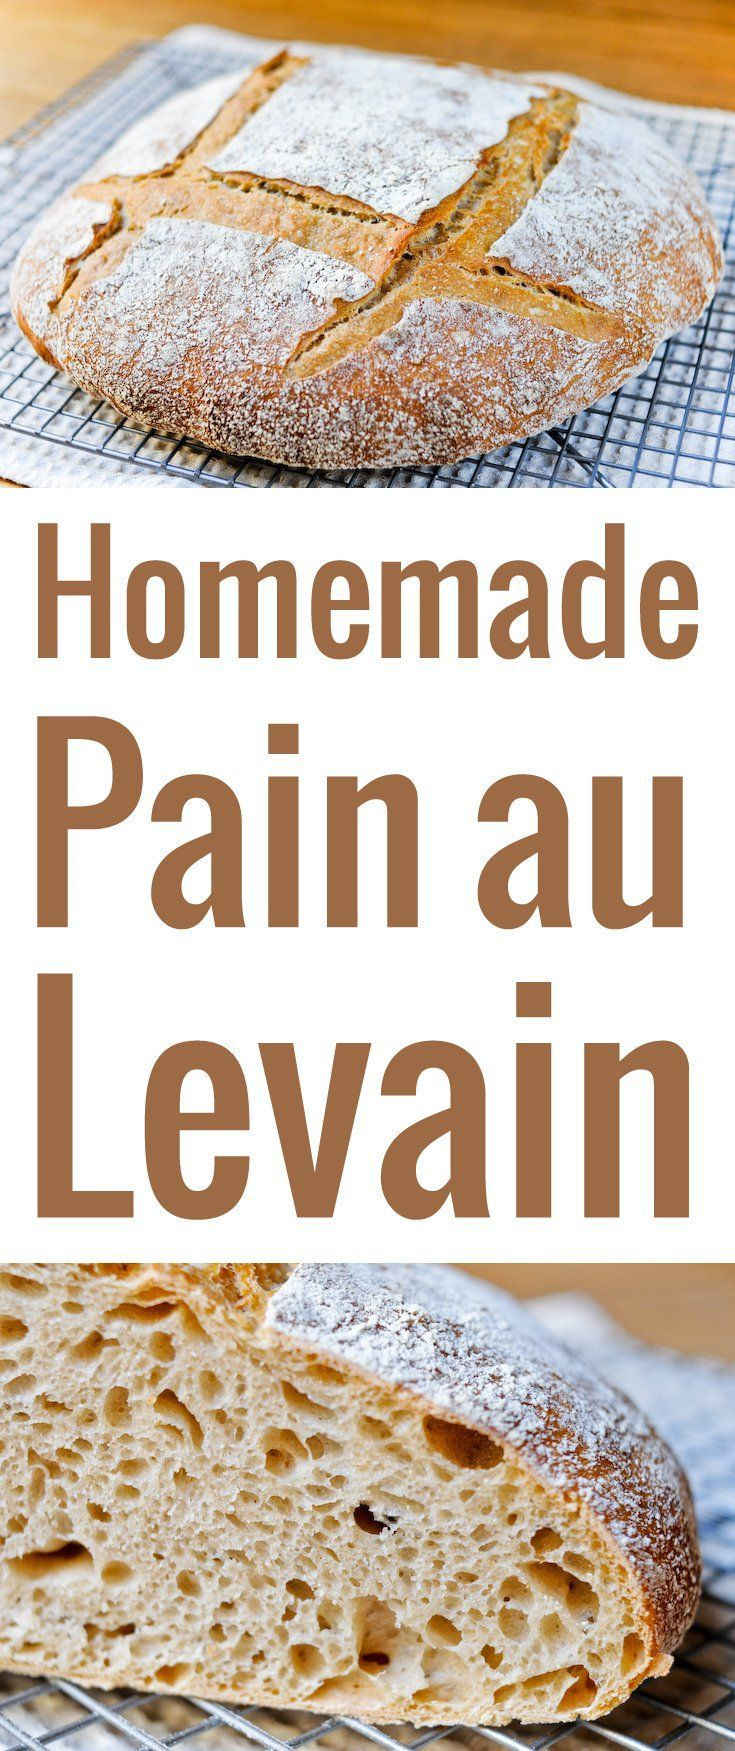 A super detailed, precise recipe to make a perfect French-style pain au levain…